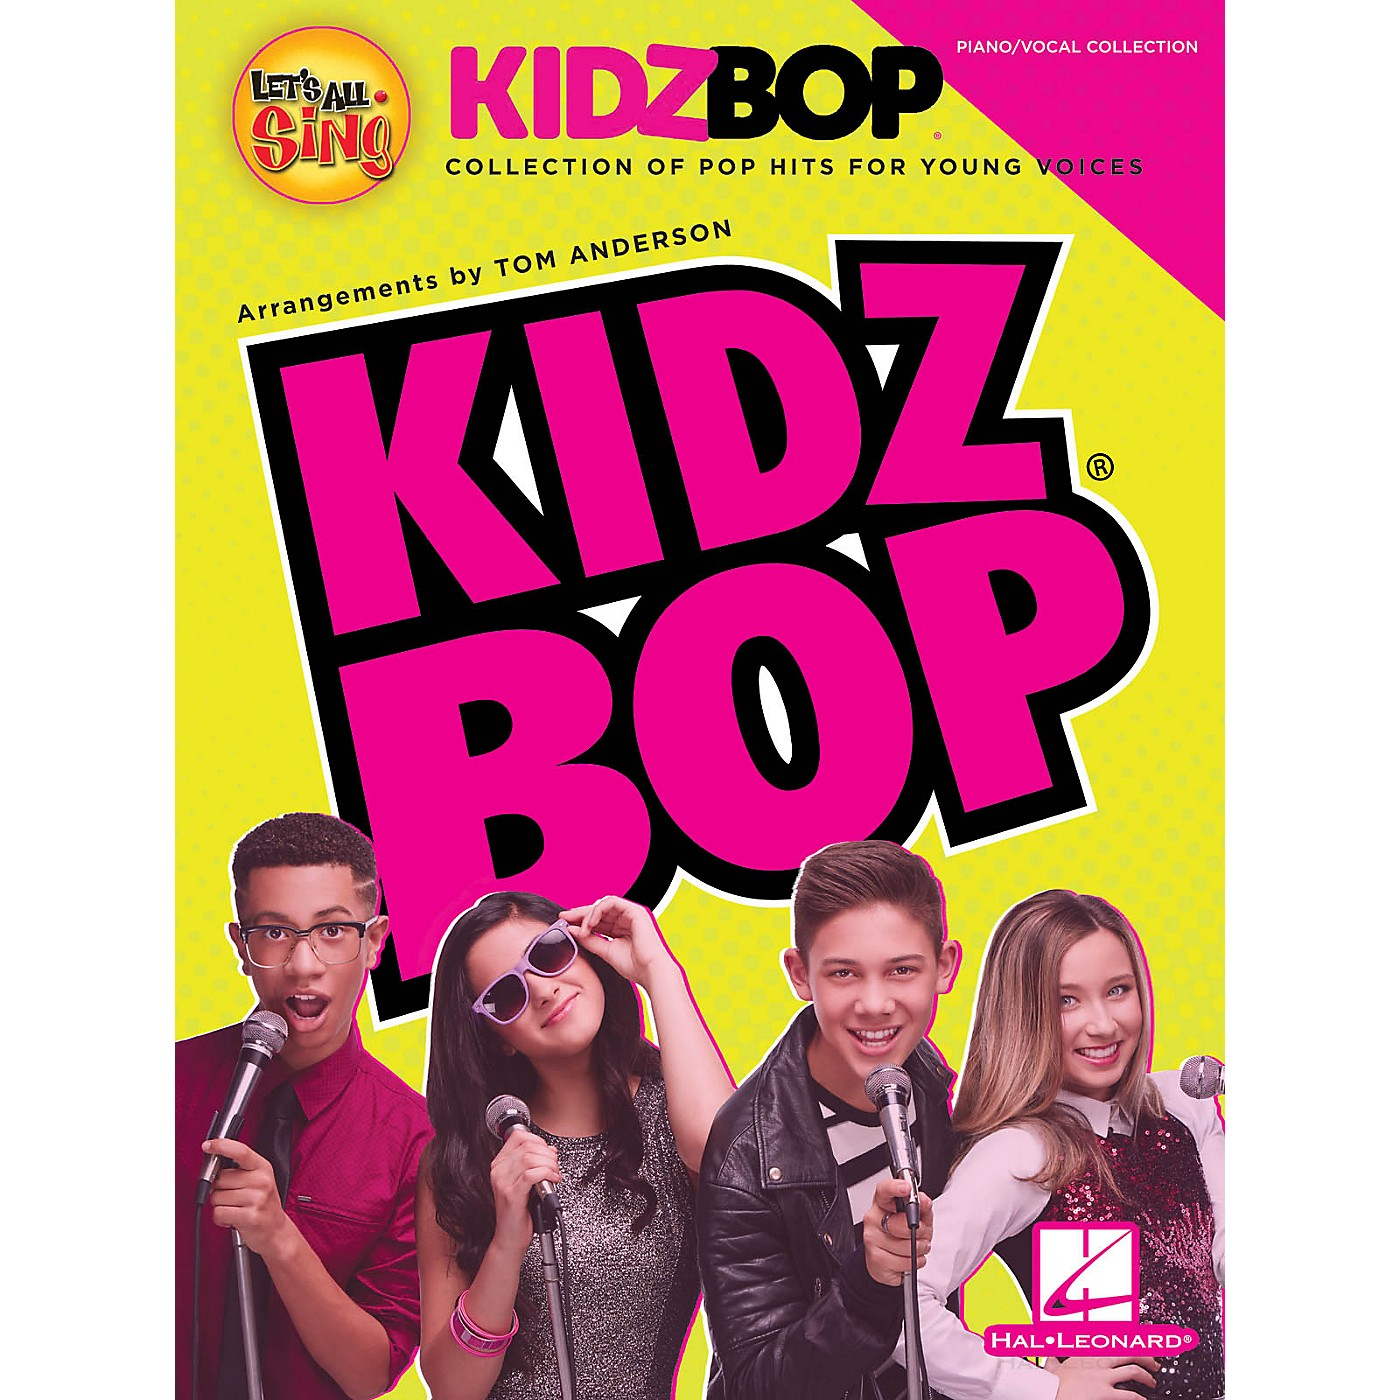 Hal Leonard Let's All Sing KIDZ BOP (Collection for Young Voices) Singer 10 Pak Arranged by Tom Anderson thumbnail